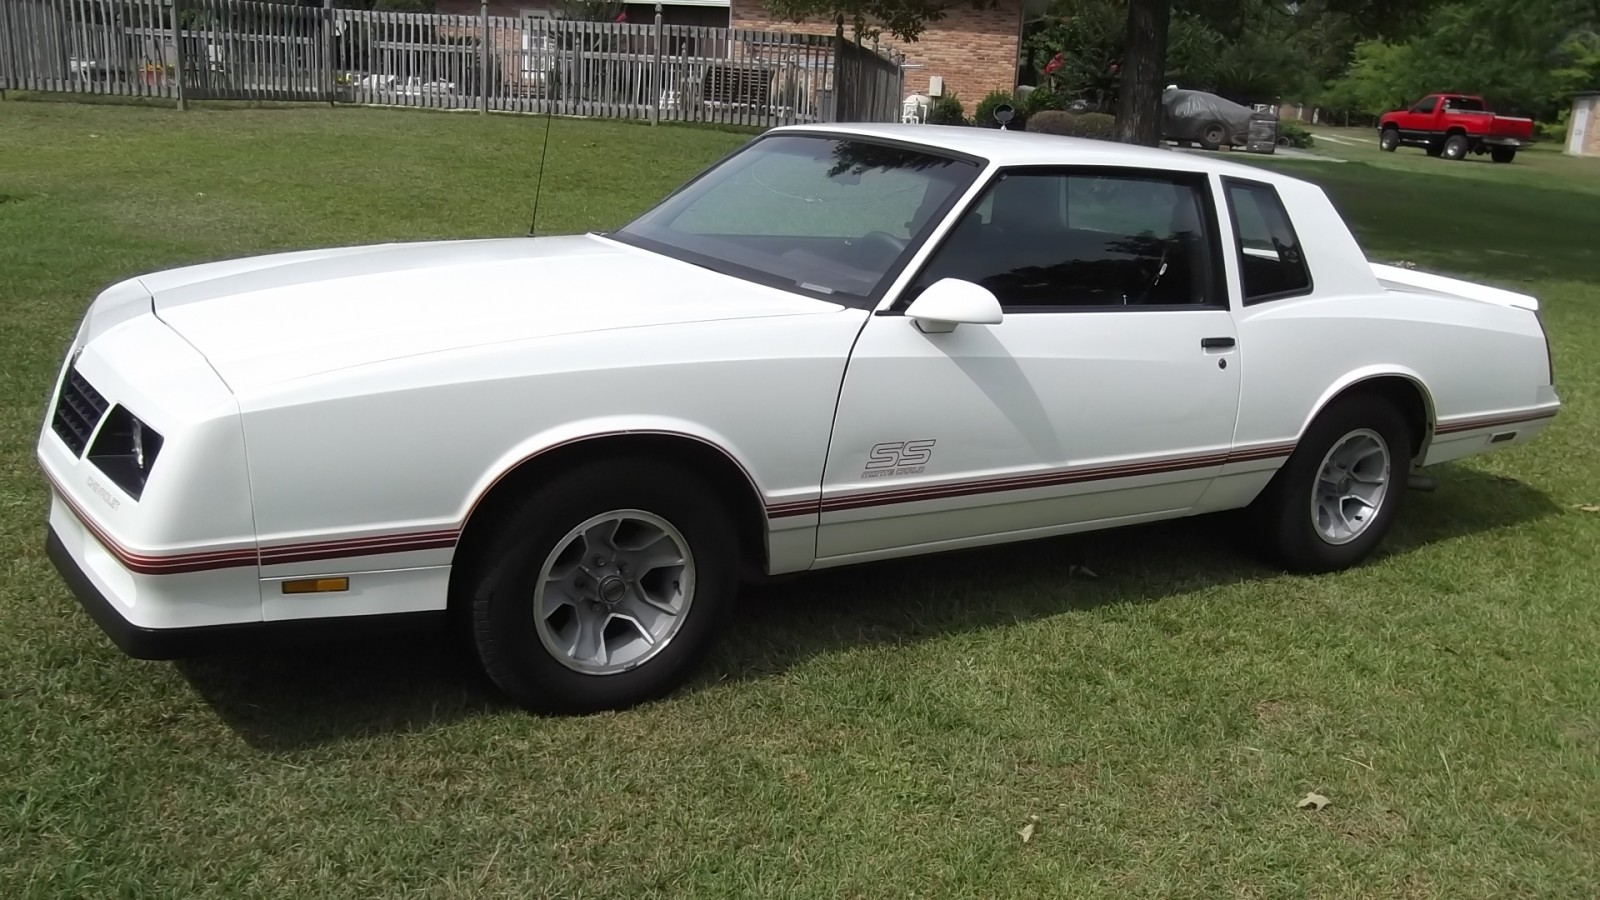 Not For Parts: 1987 Chevrolet Monte Carlo SS